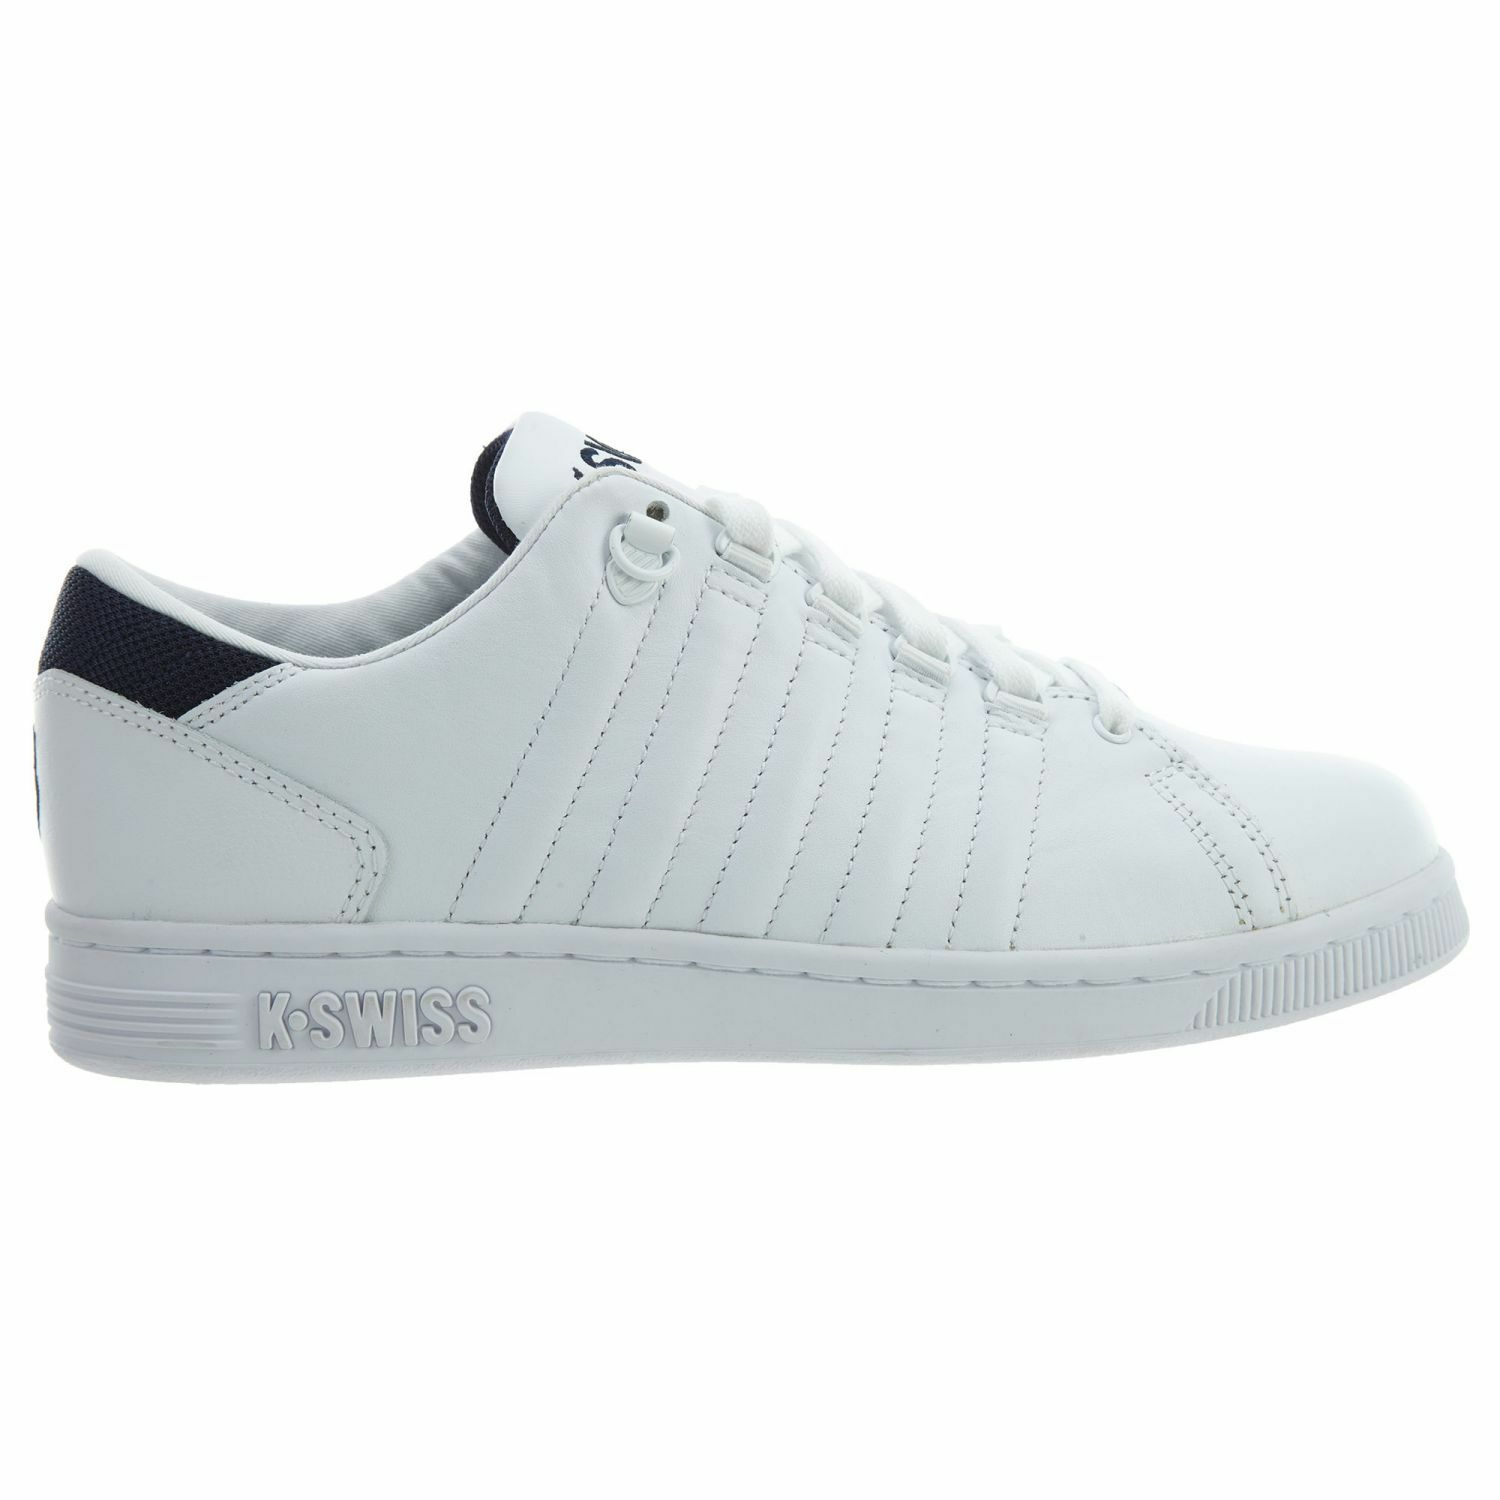 K-Swiss Lozan III TT Mens 05398-109 White Navy Leather Athletic shoes Size 9.5